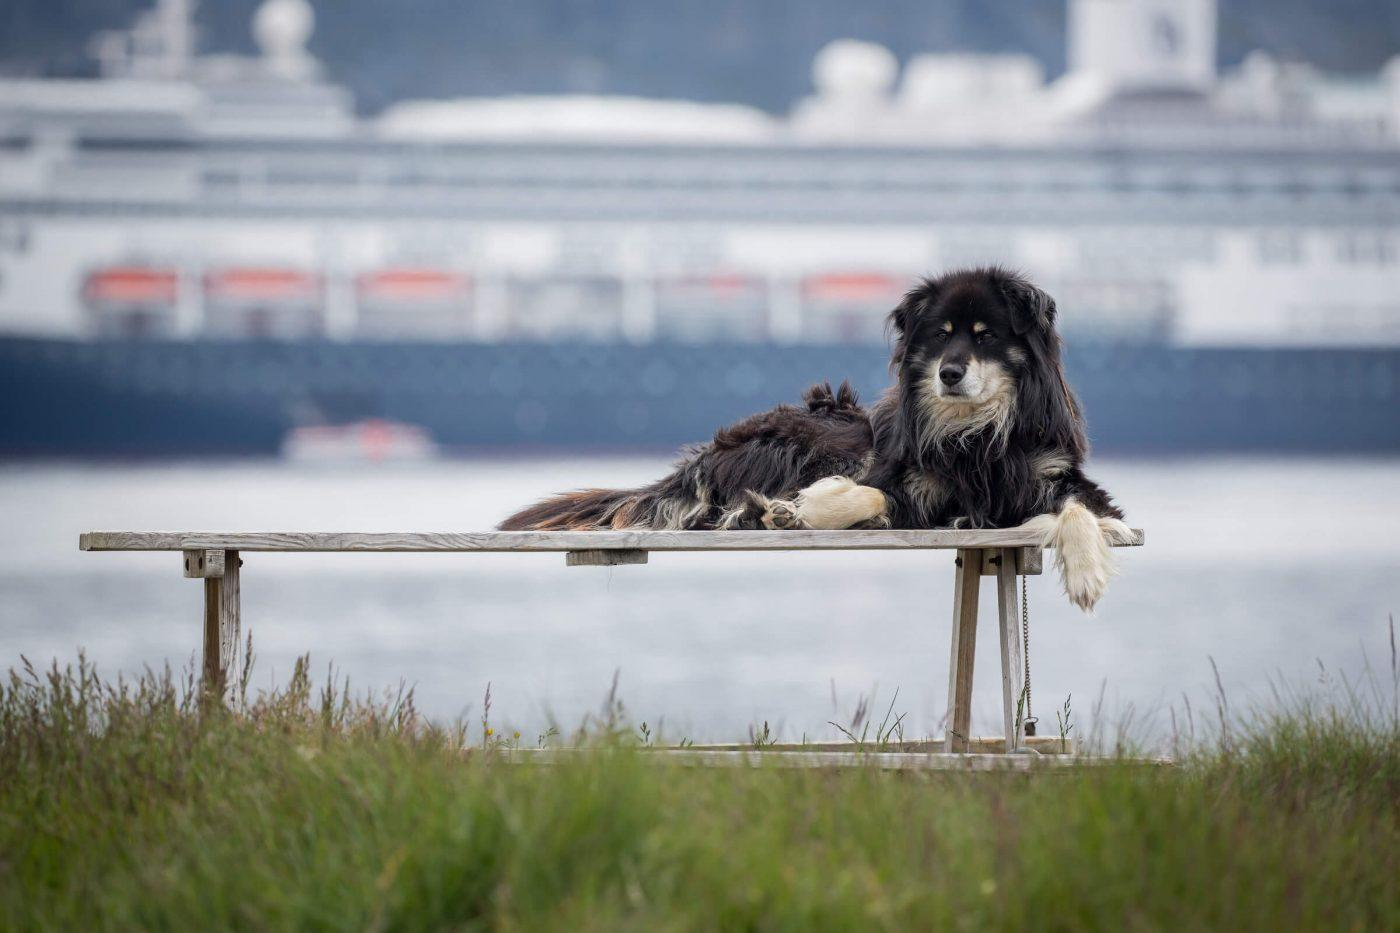 A dog on a park bench with the cruise ship Rotterdam in the background in Nanortalik in South Greenland. Photo by Mads Pihl